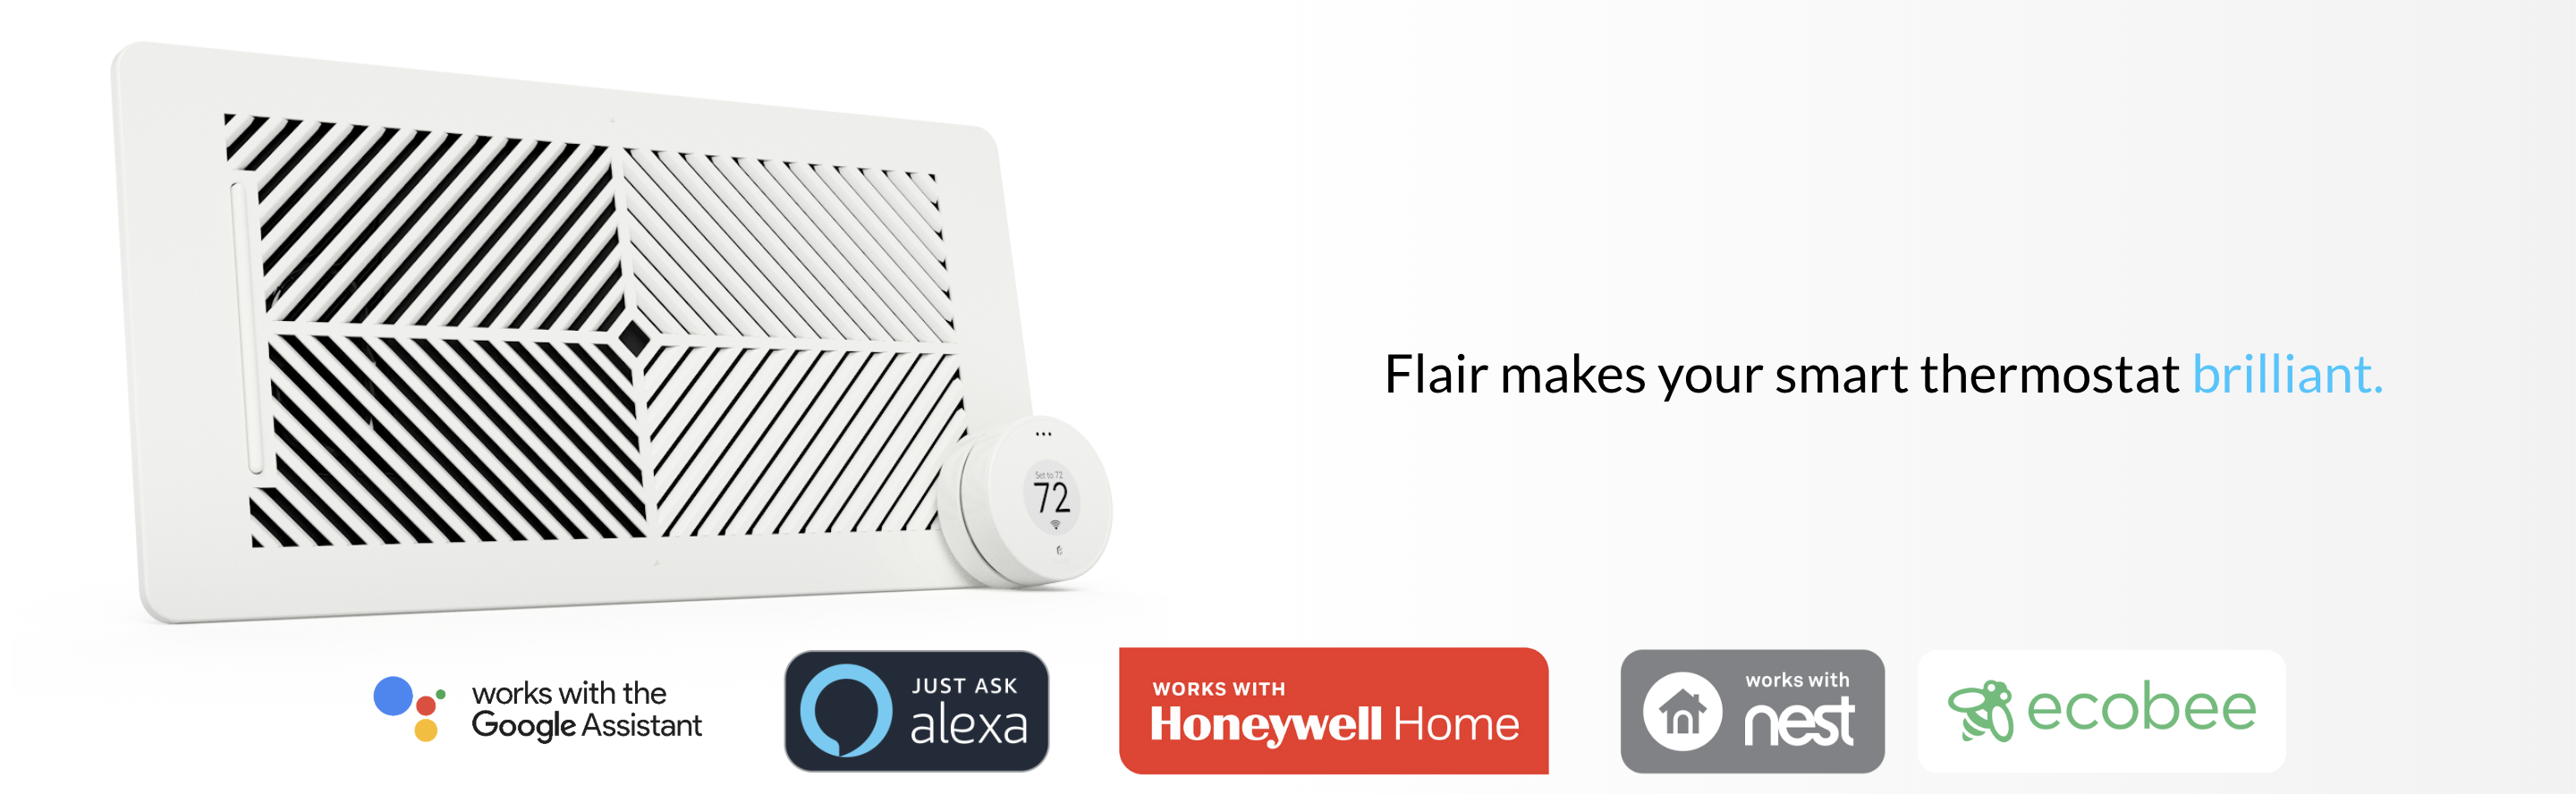 Flair Puck, WiFi Wireless Thermostat (Pearl White)  Controls Flair Smart  Vents  Compatible with Alexa, works with Nest, ecobee, Honeywell Lyric, and